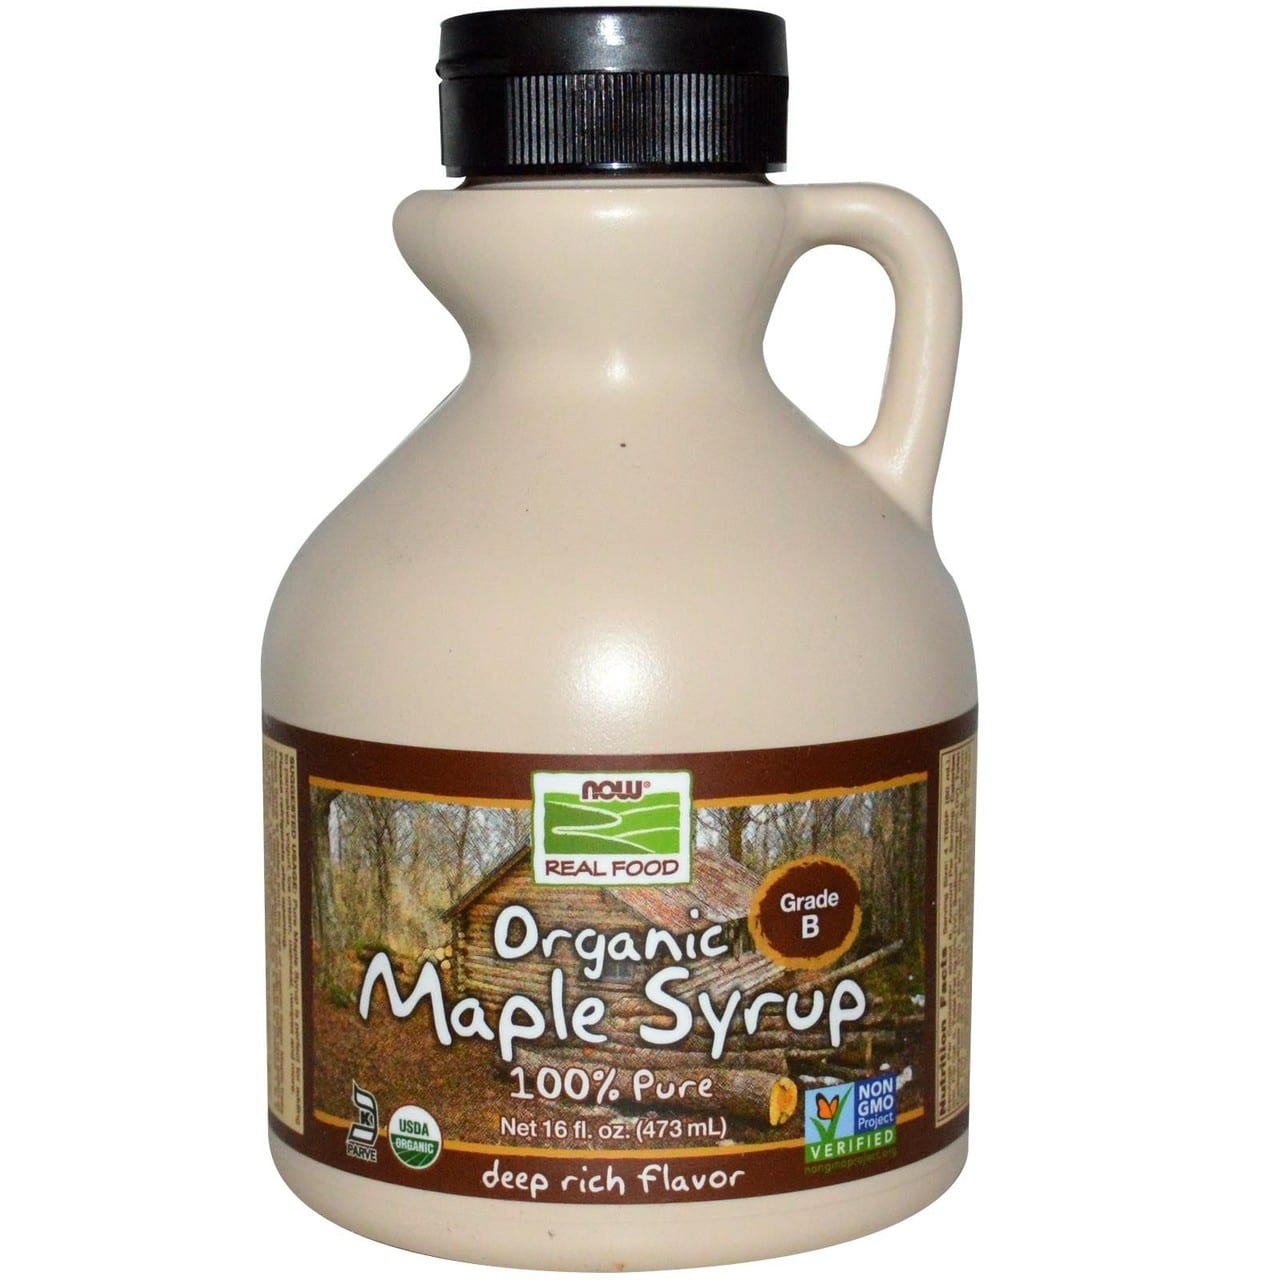 NOW Organic Maple Syrup